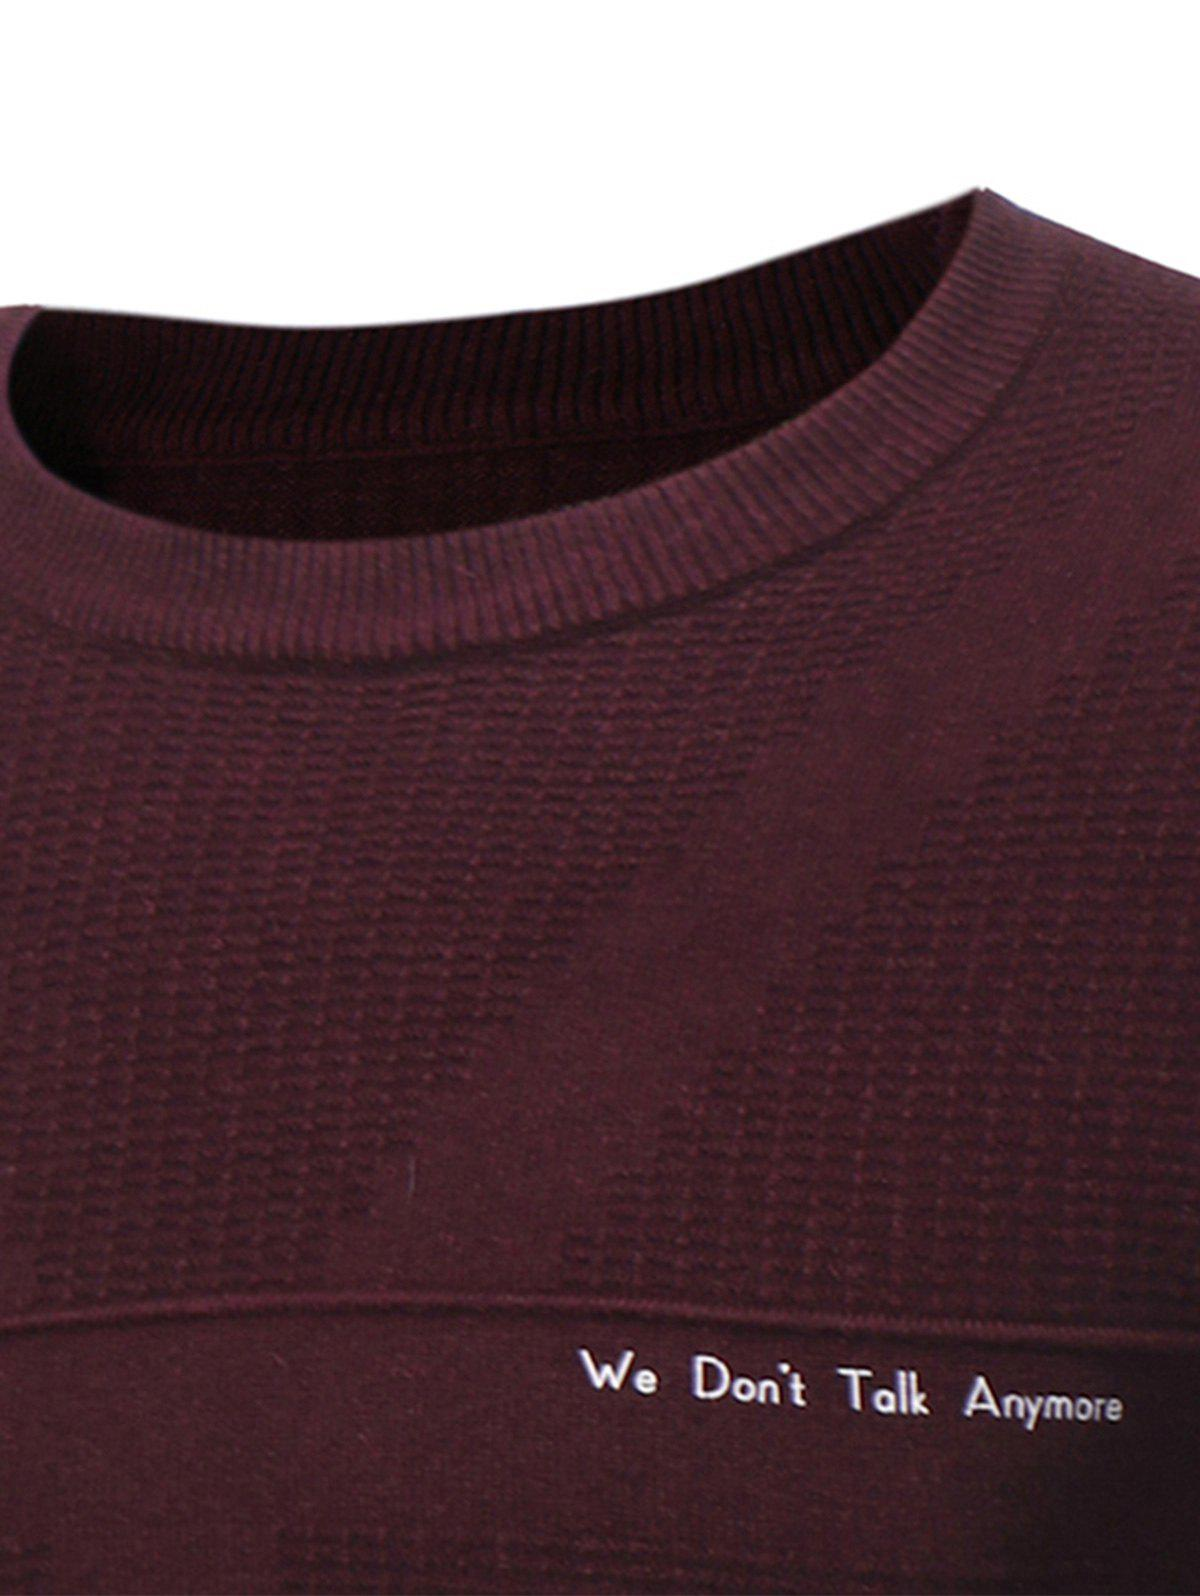 Graphic Print Jacquard Pullover Sweater - WINE RED L